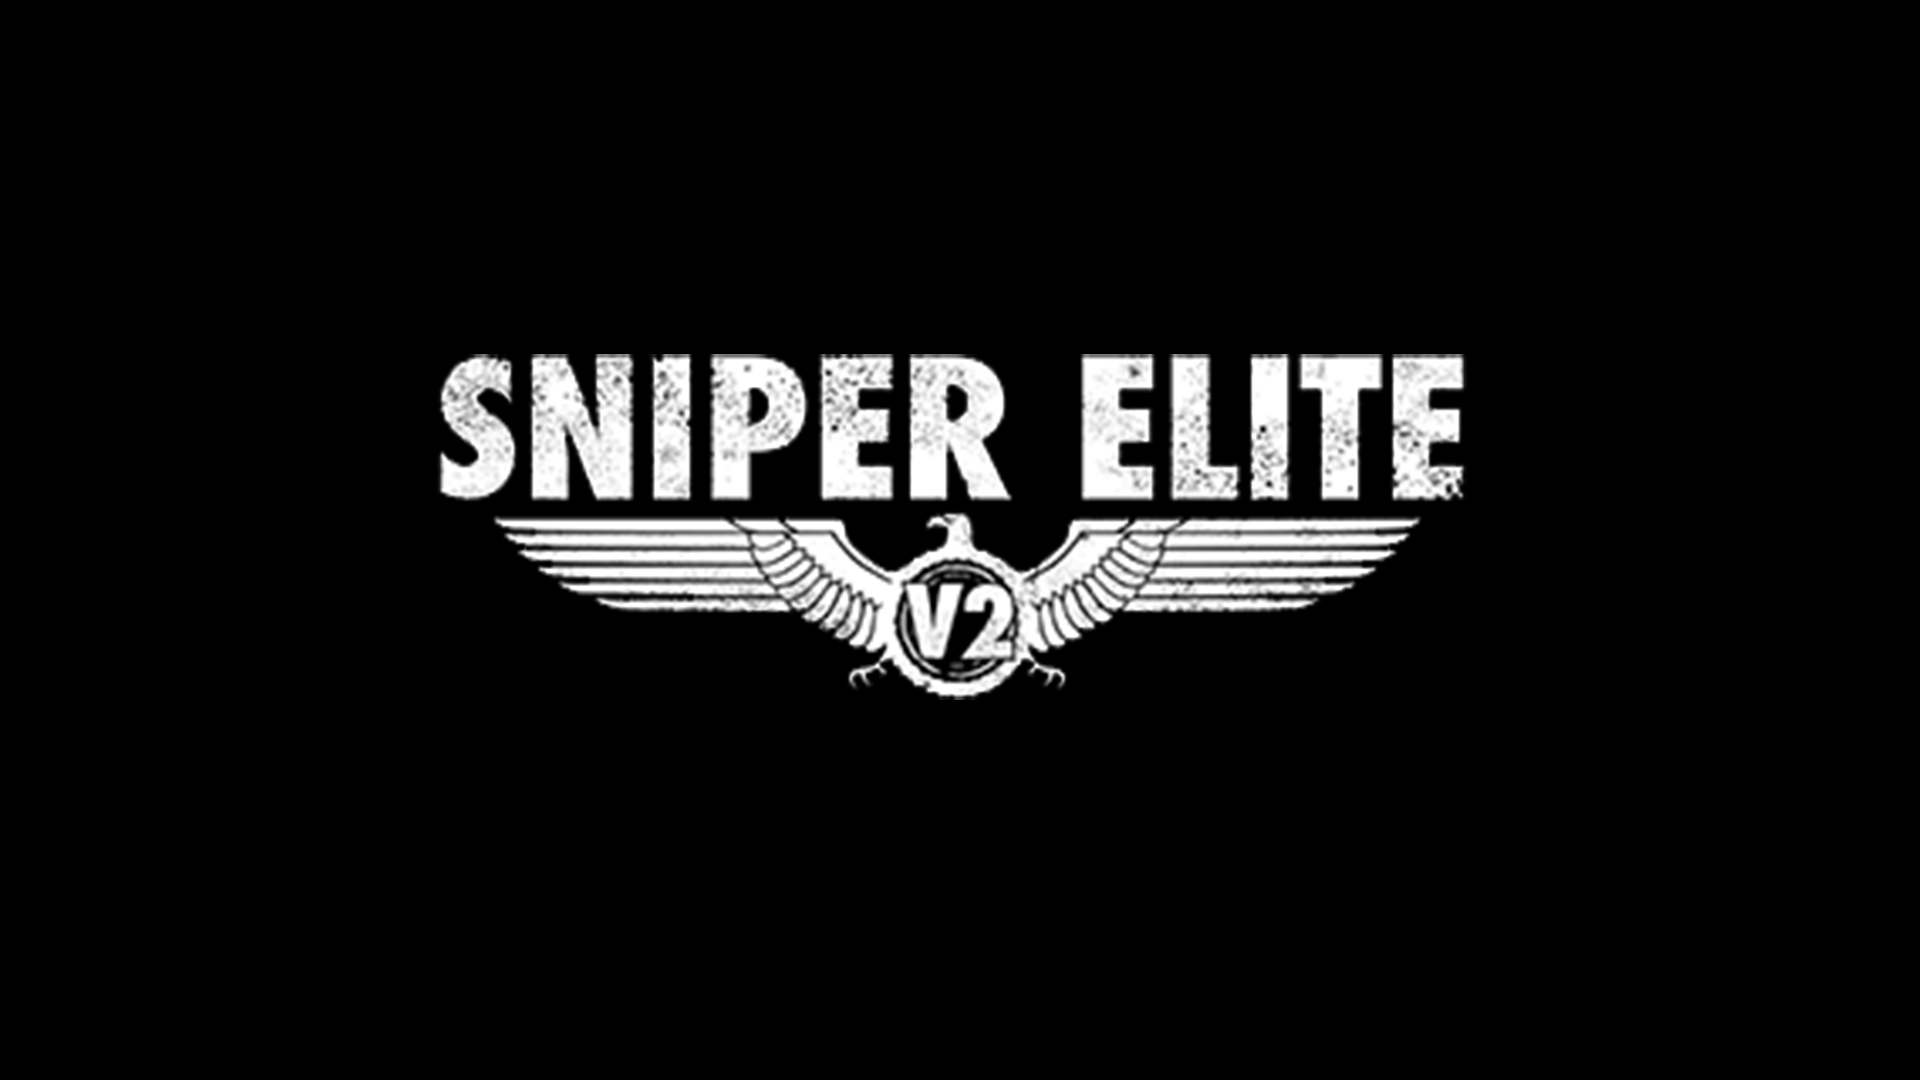 Sniper Elite V2 Game Wallpaper Desktop 6813 Wallpaper ForWallpapers 1920x1080